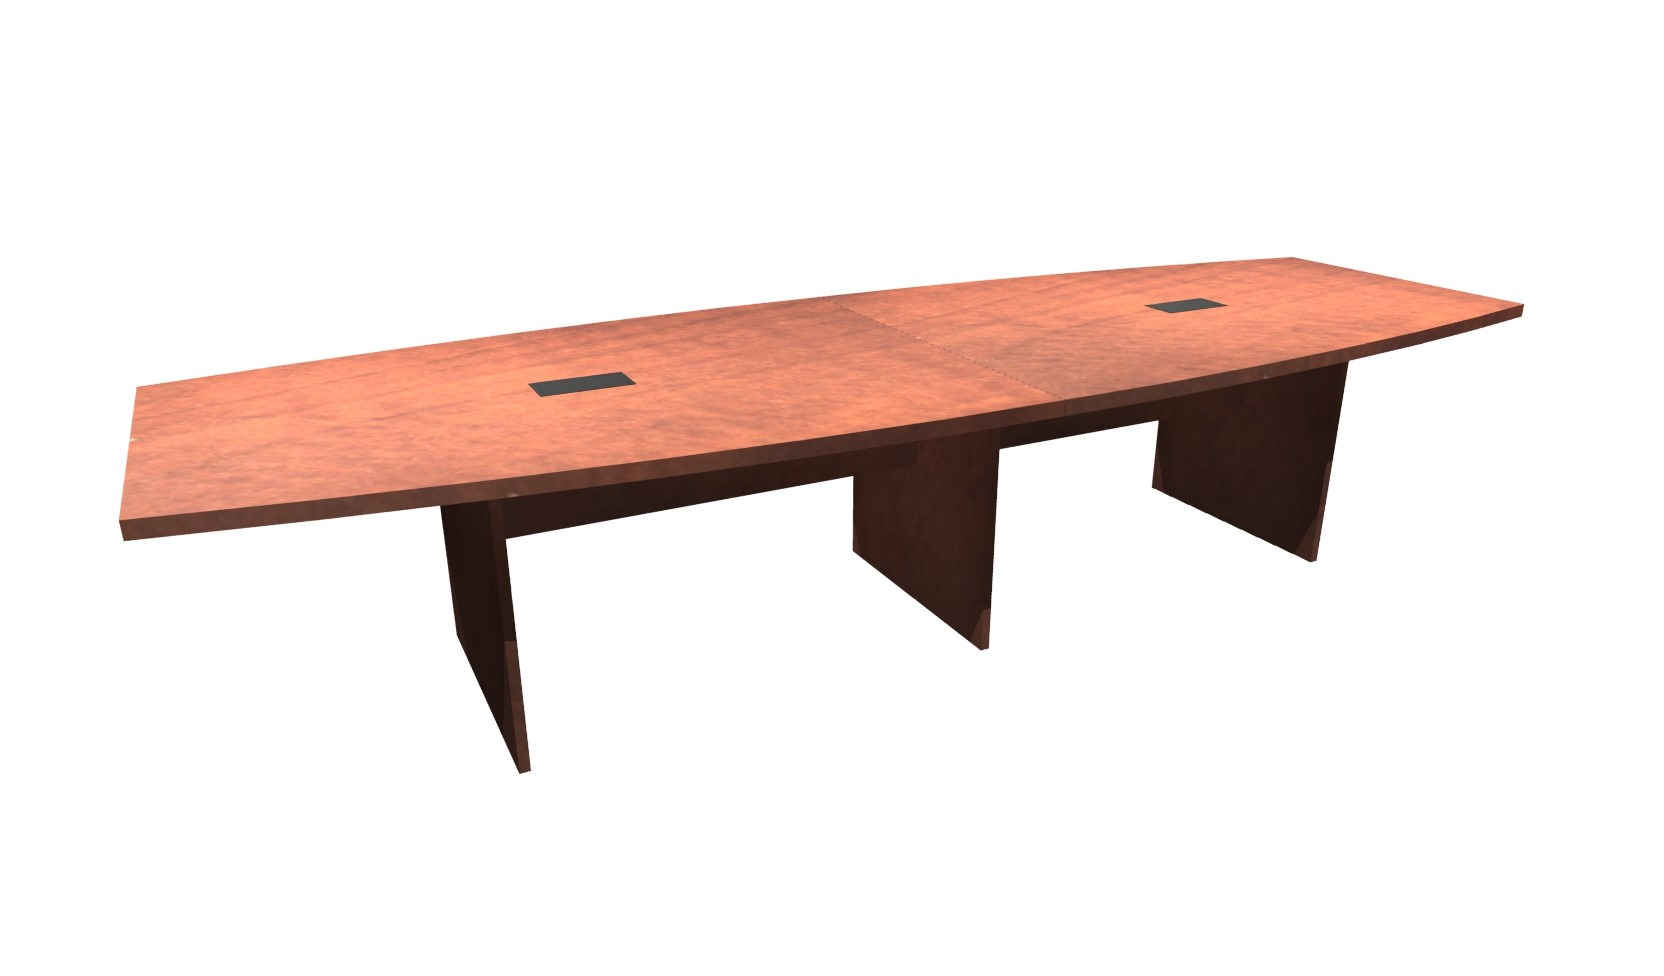 FT Cherry Boat Shaped Conference Table - 12 foot boat shaped conference table